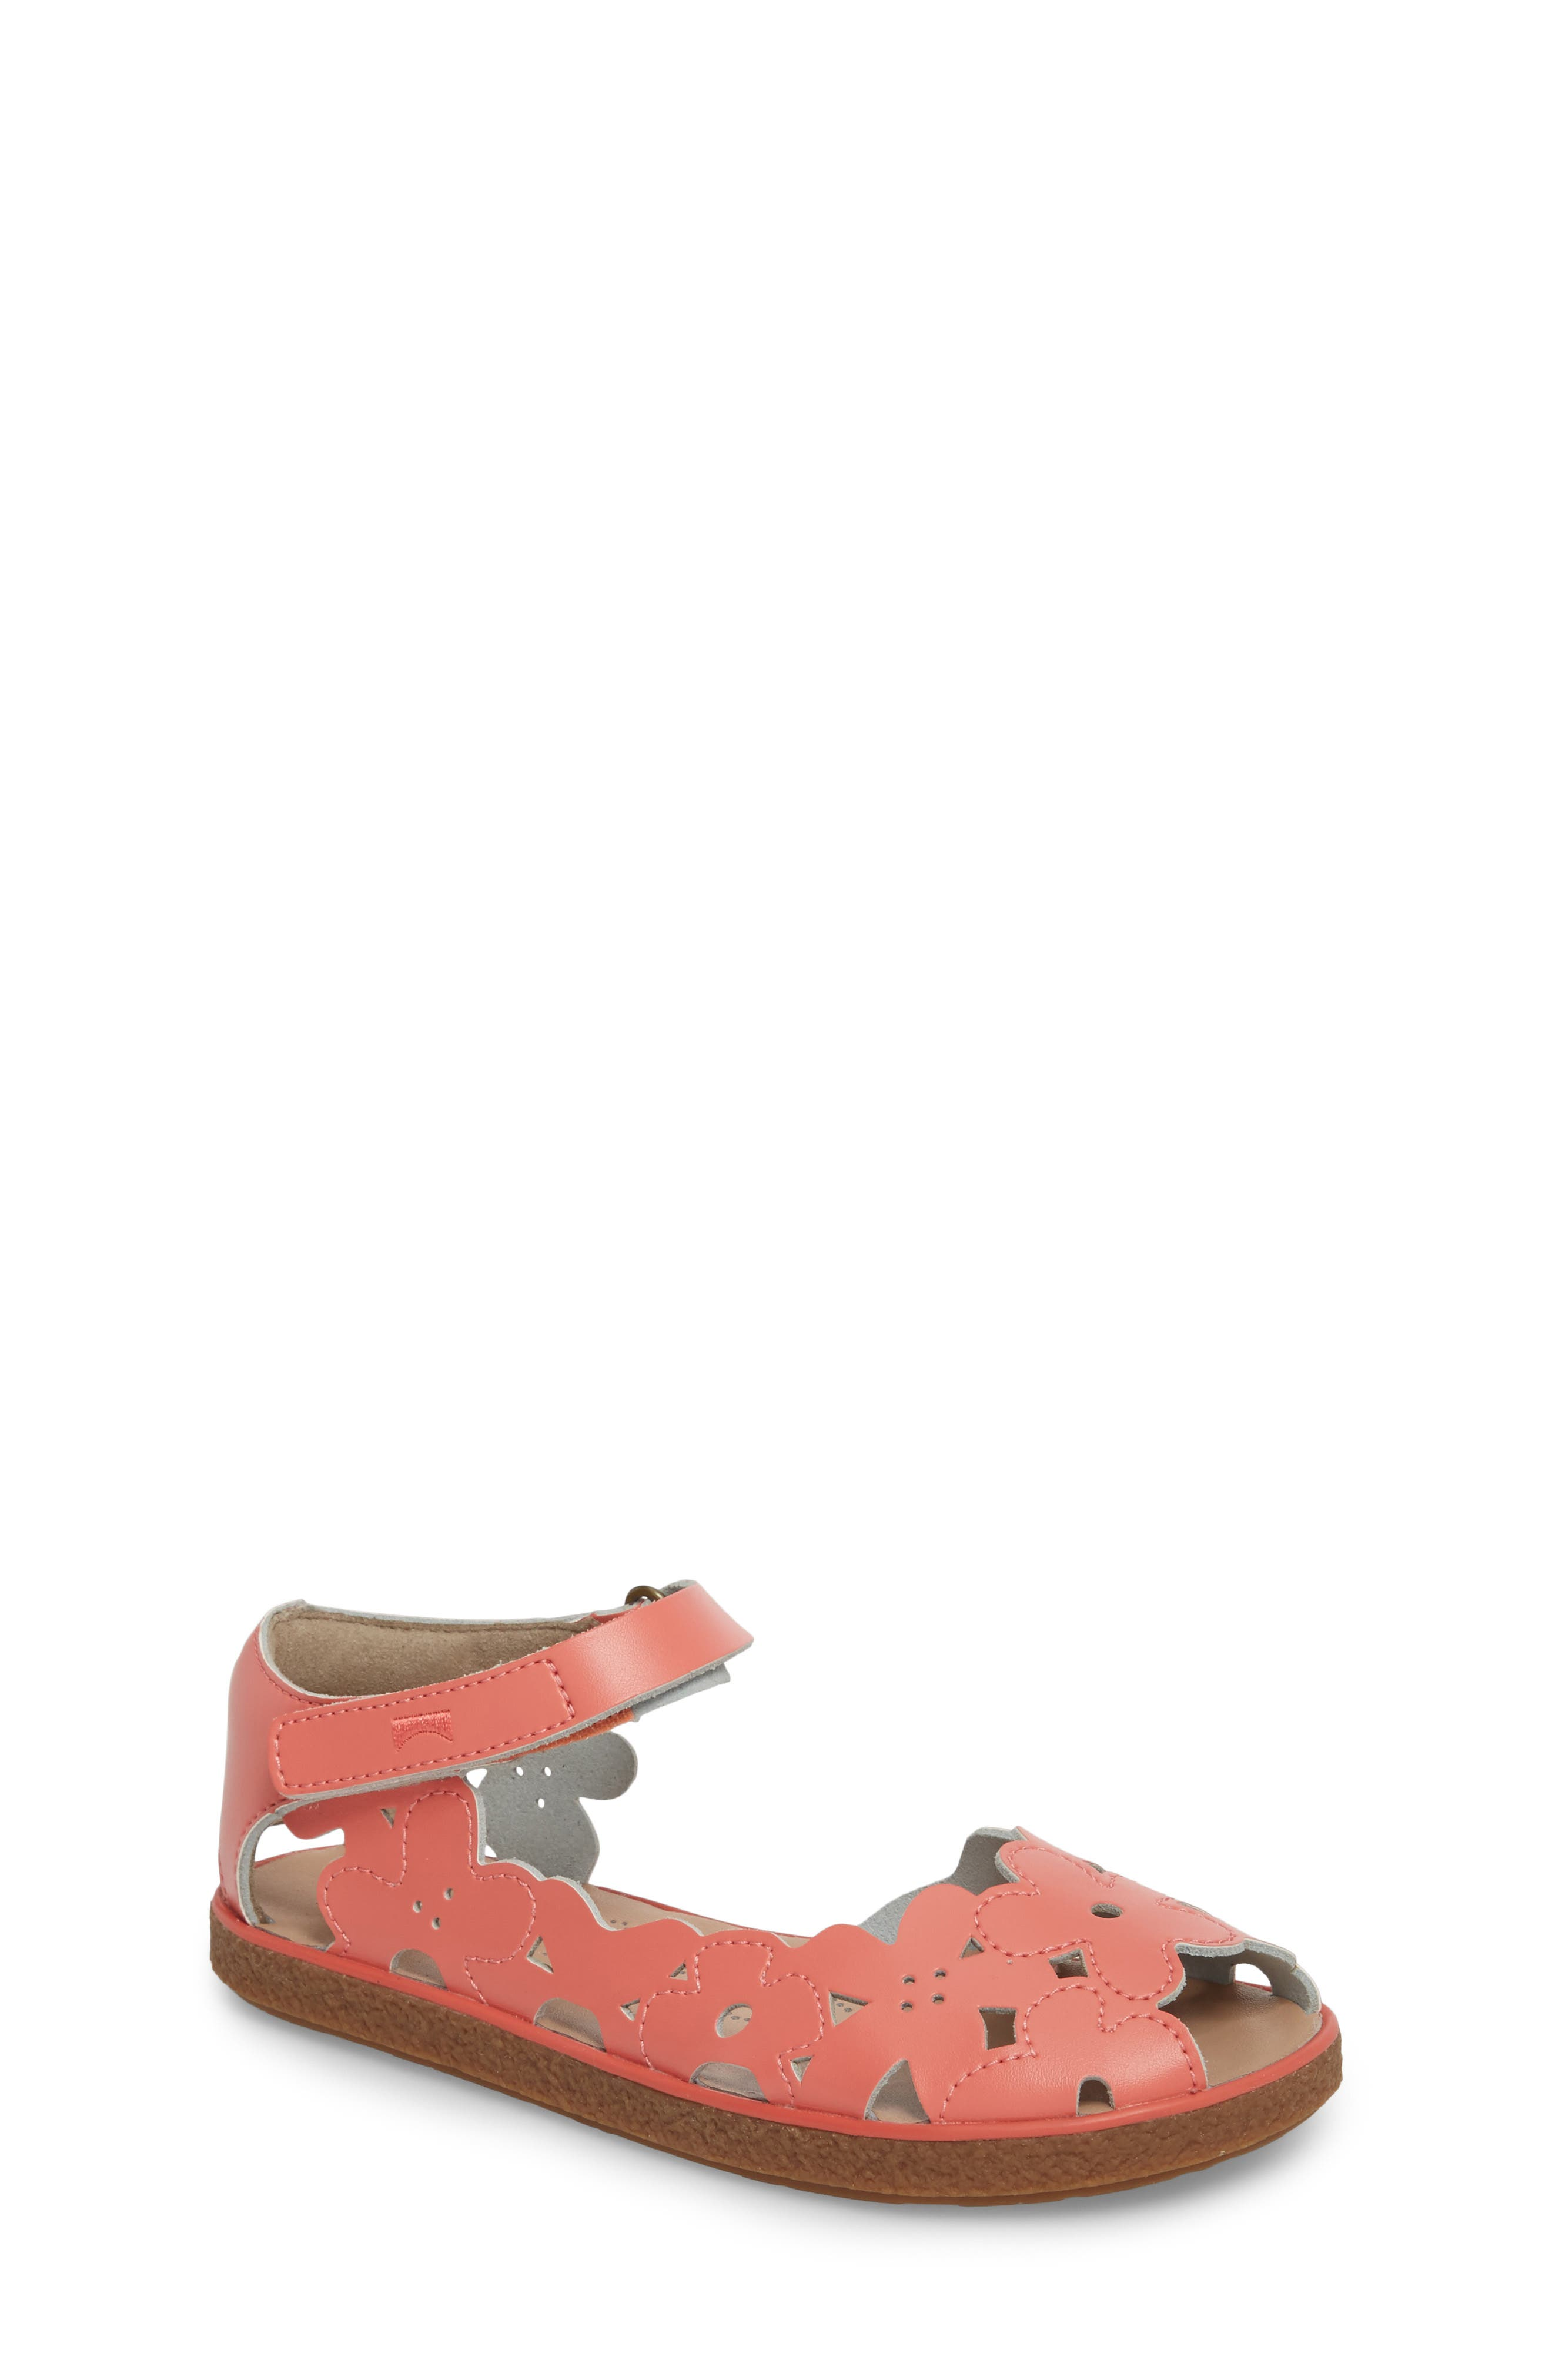 Twins Perforated Sandal,                             Main thumbnail 1, color,                             Pink